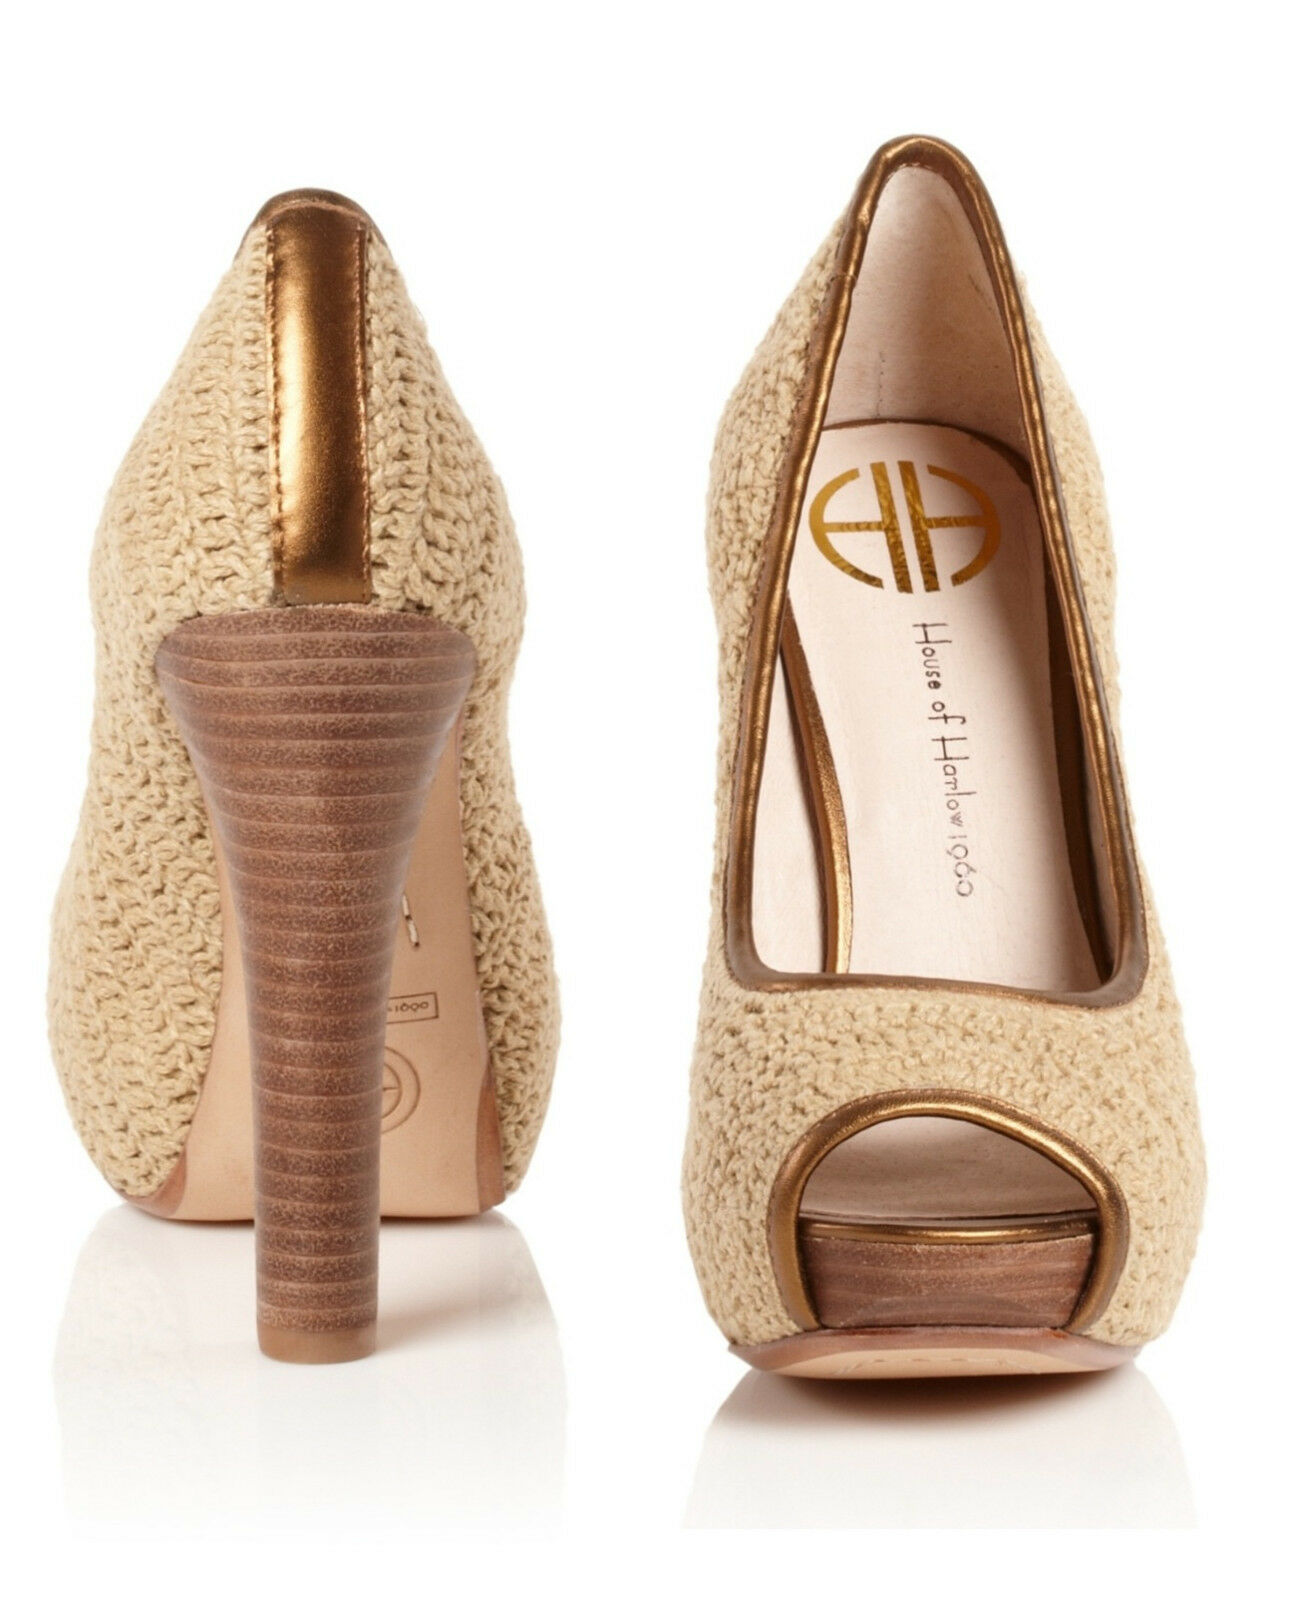 New In Box HOUSE OF HARLOW 1960 Open-Toe Pump Schuhes Heels Schuhes Pump (Größe 8.5) 225 SRP 799efb